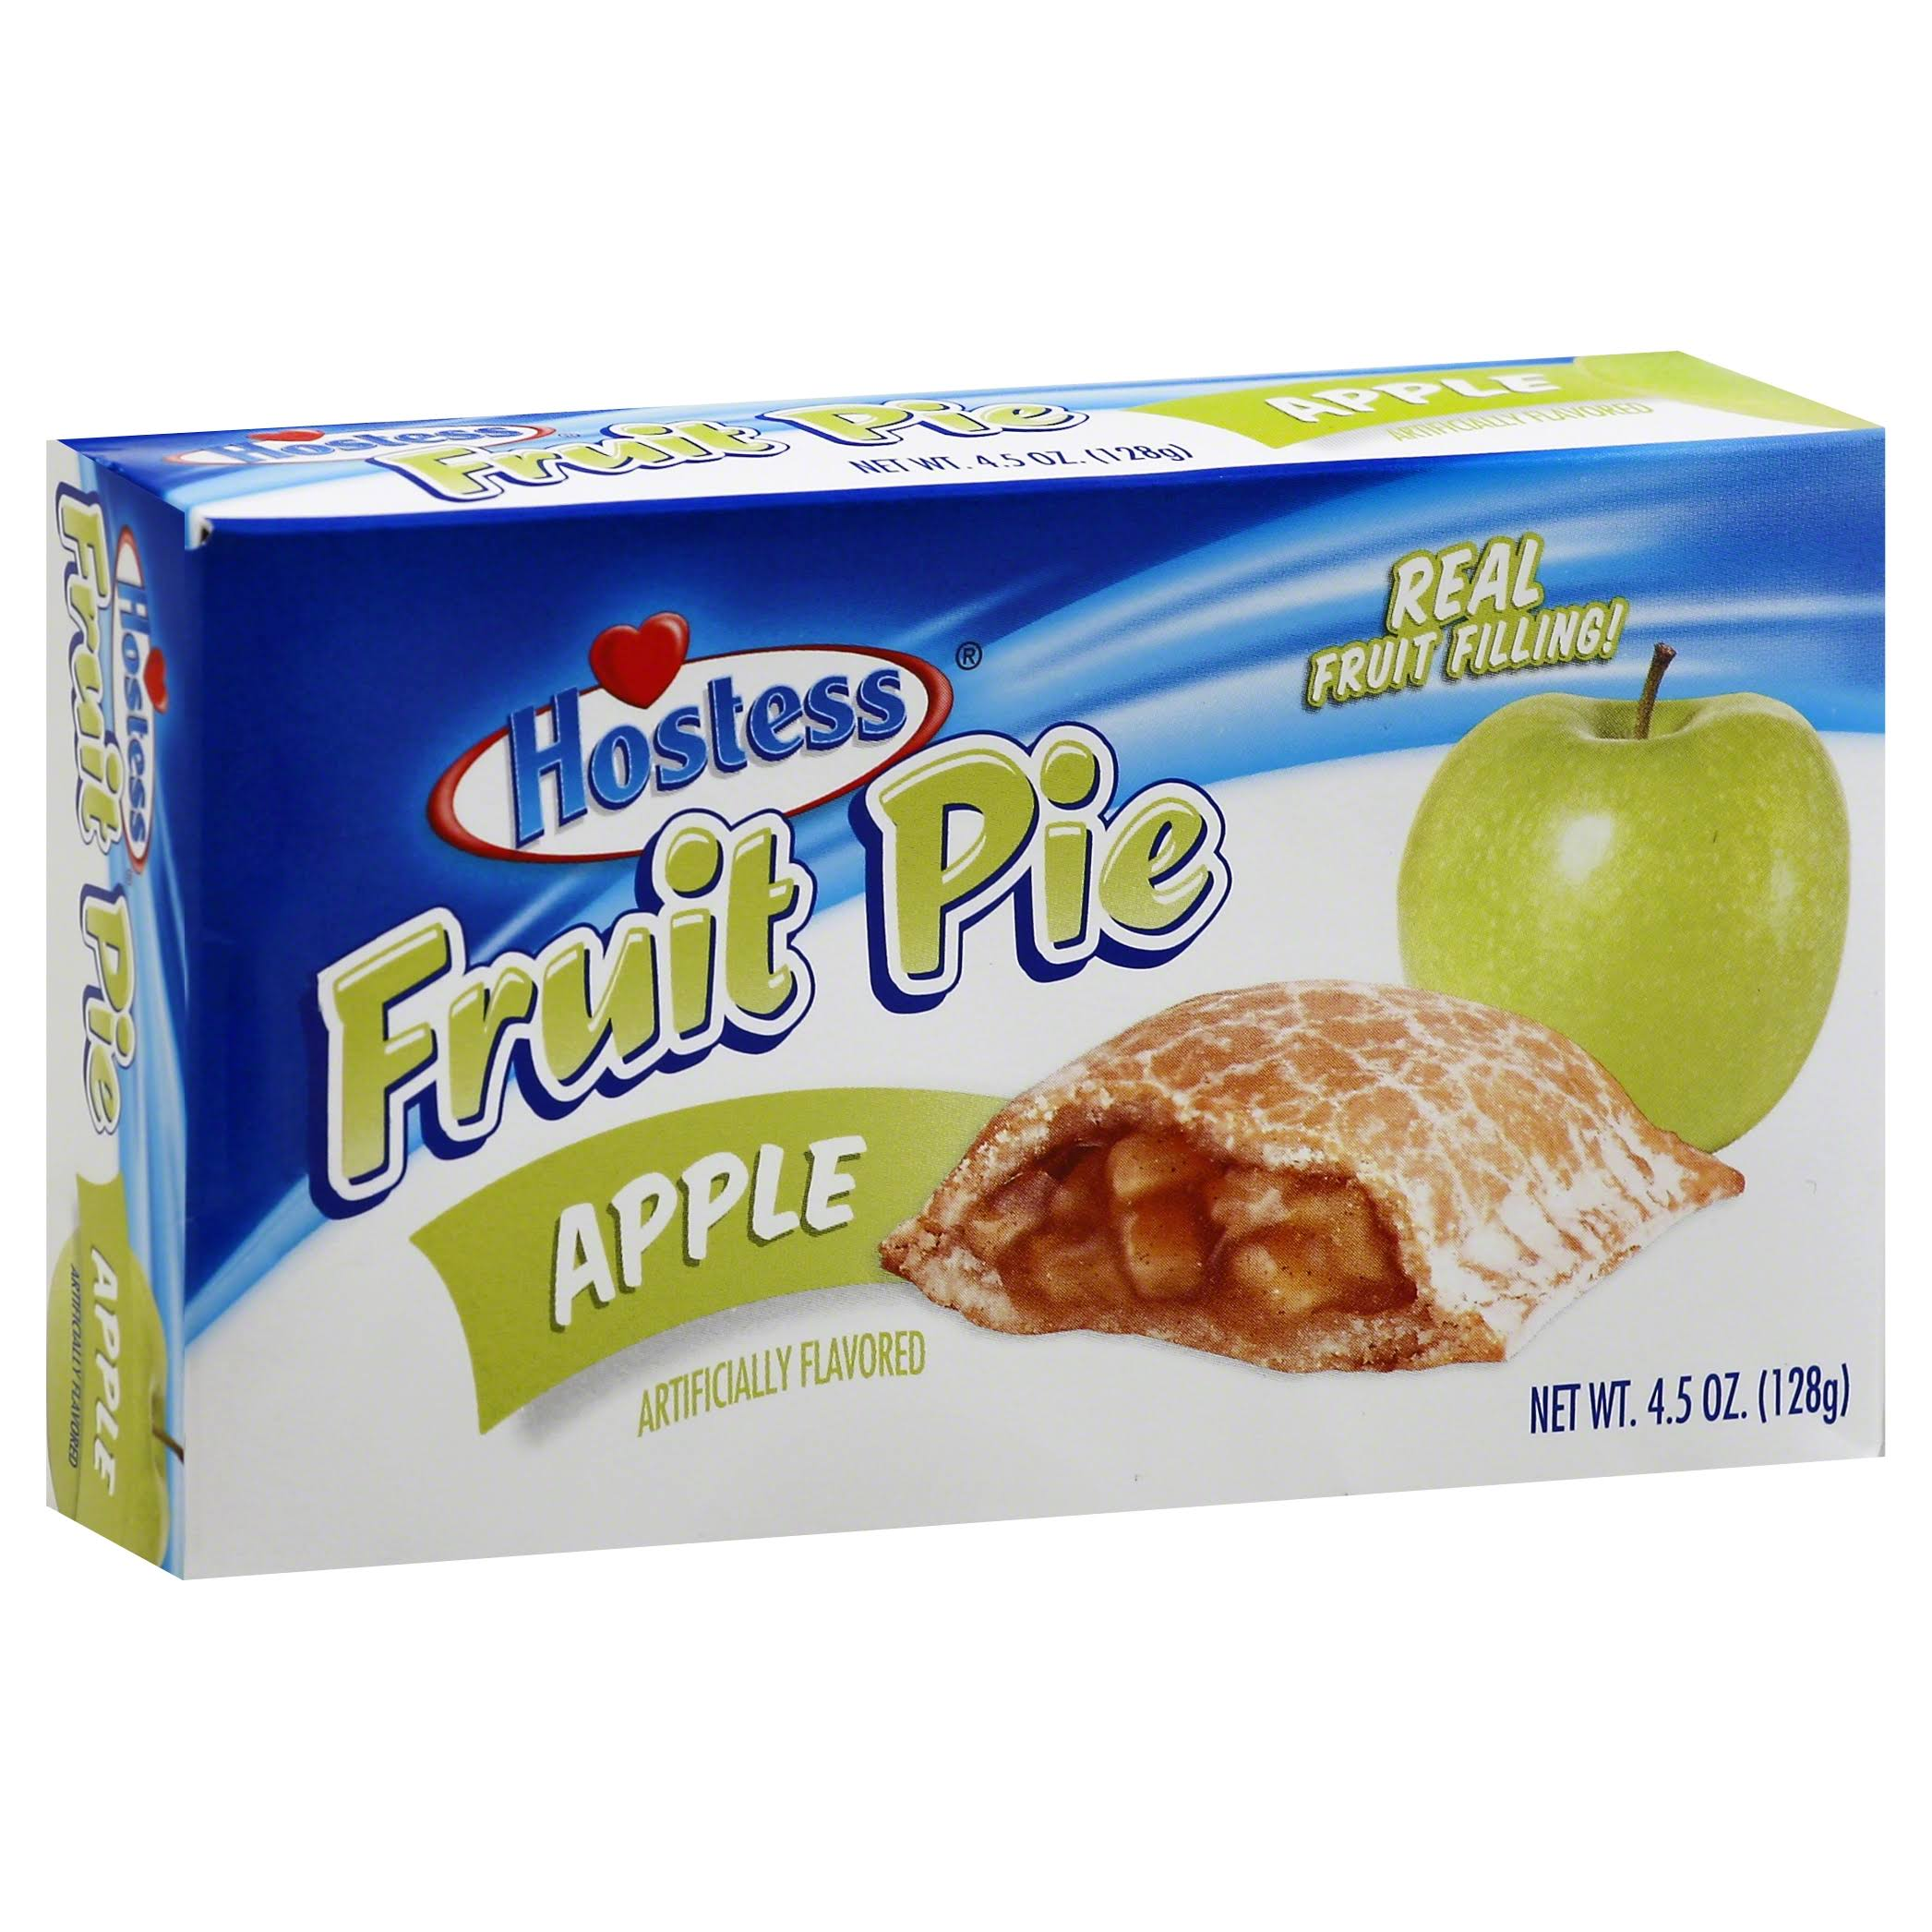 Hostess Fruit Pie - Apple